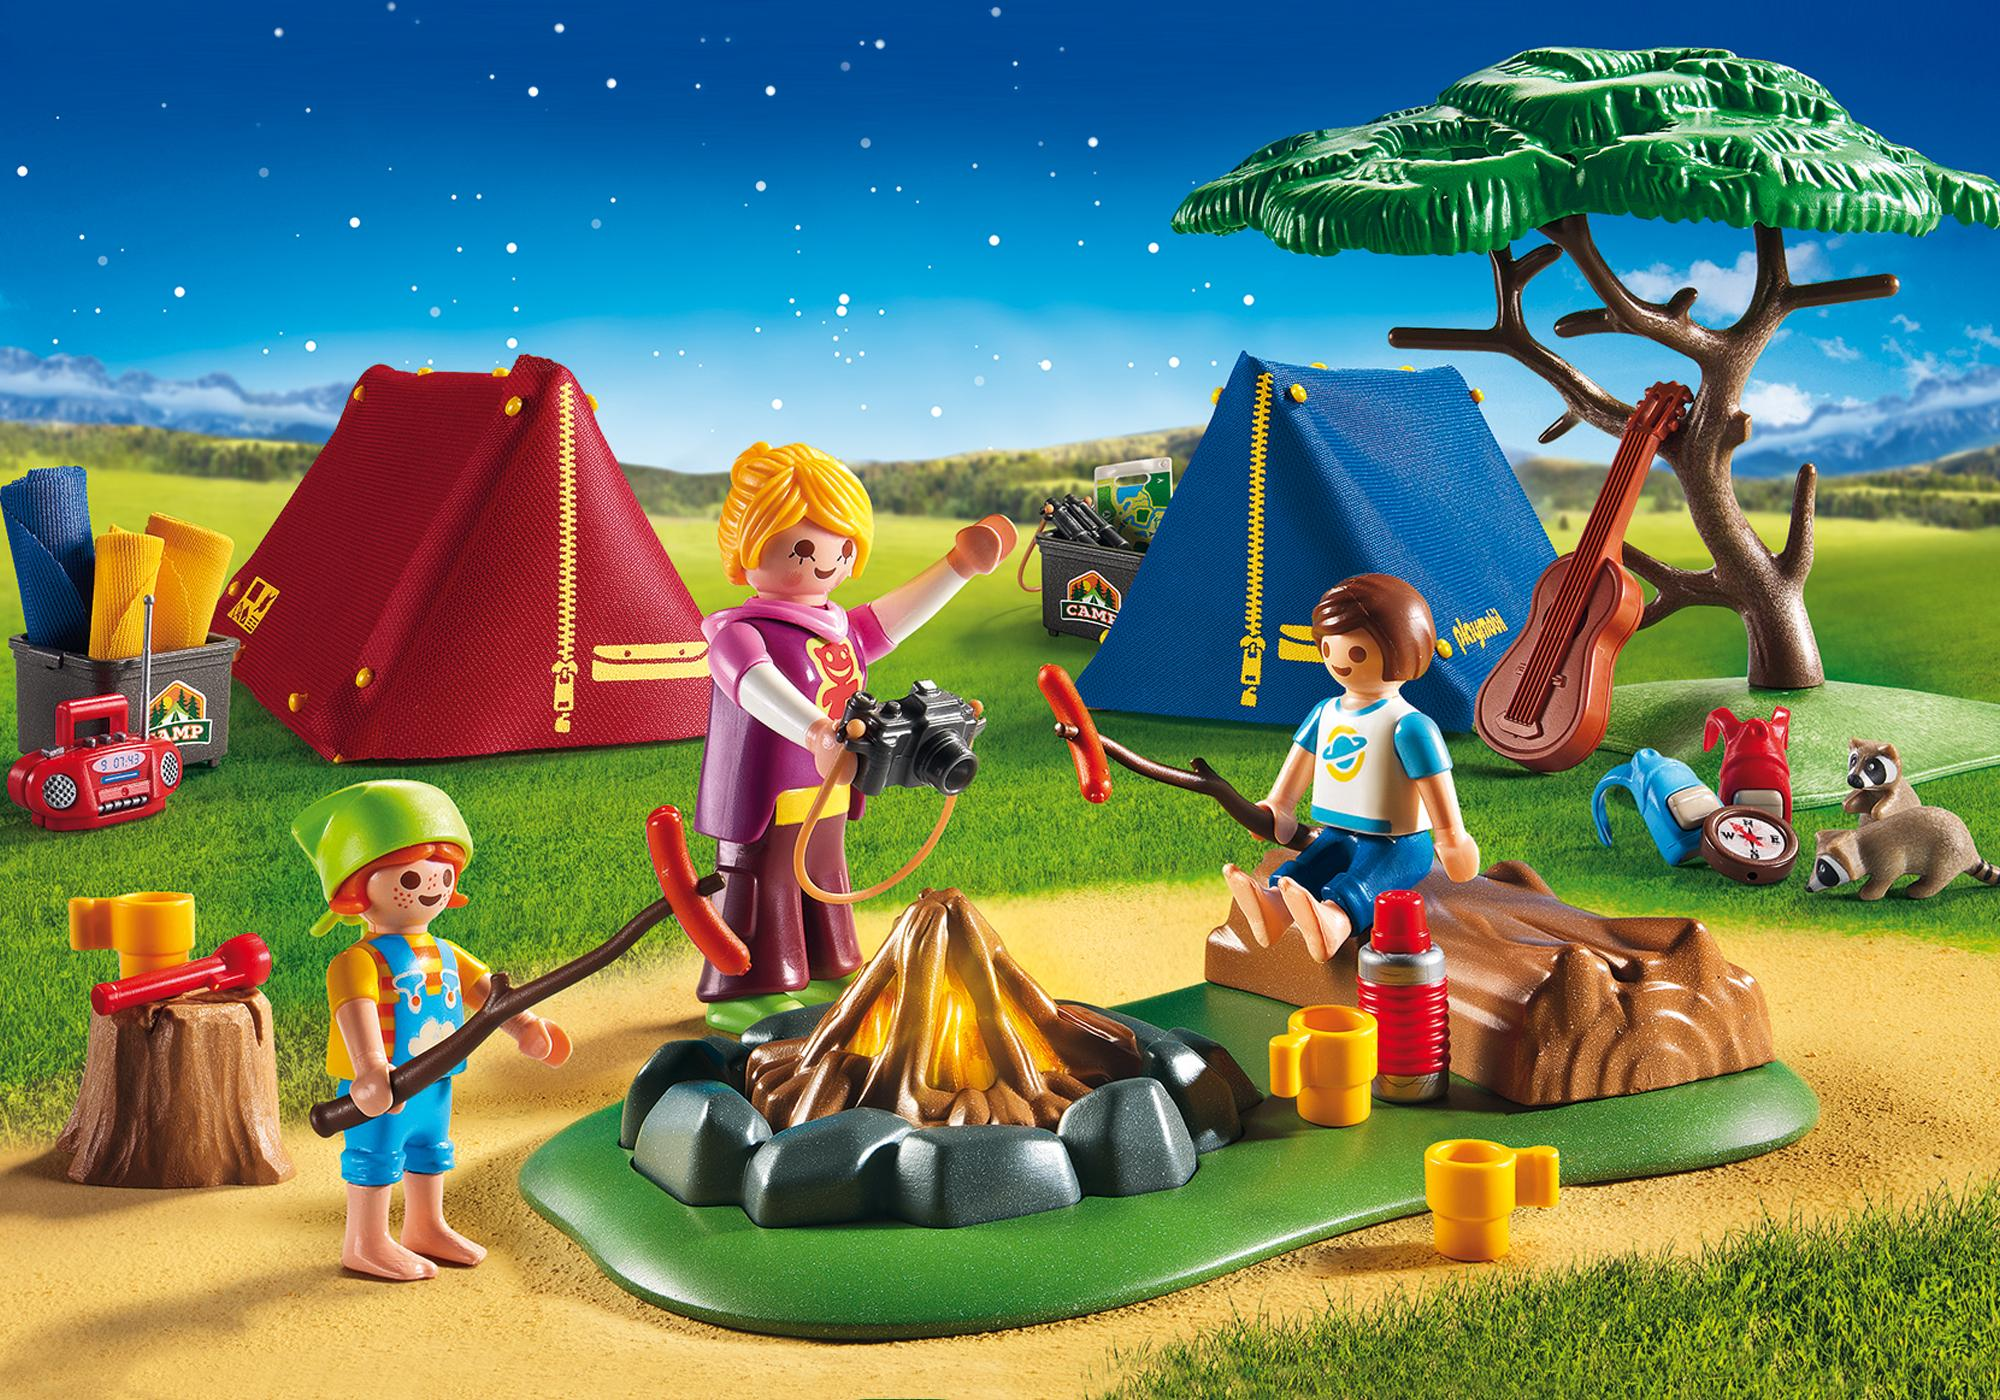 http://media.playmobil.com/i/playmobil/6888_product_detail